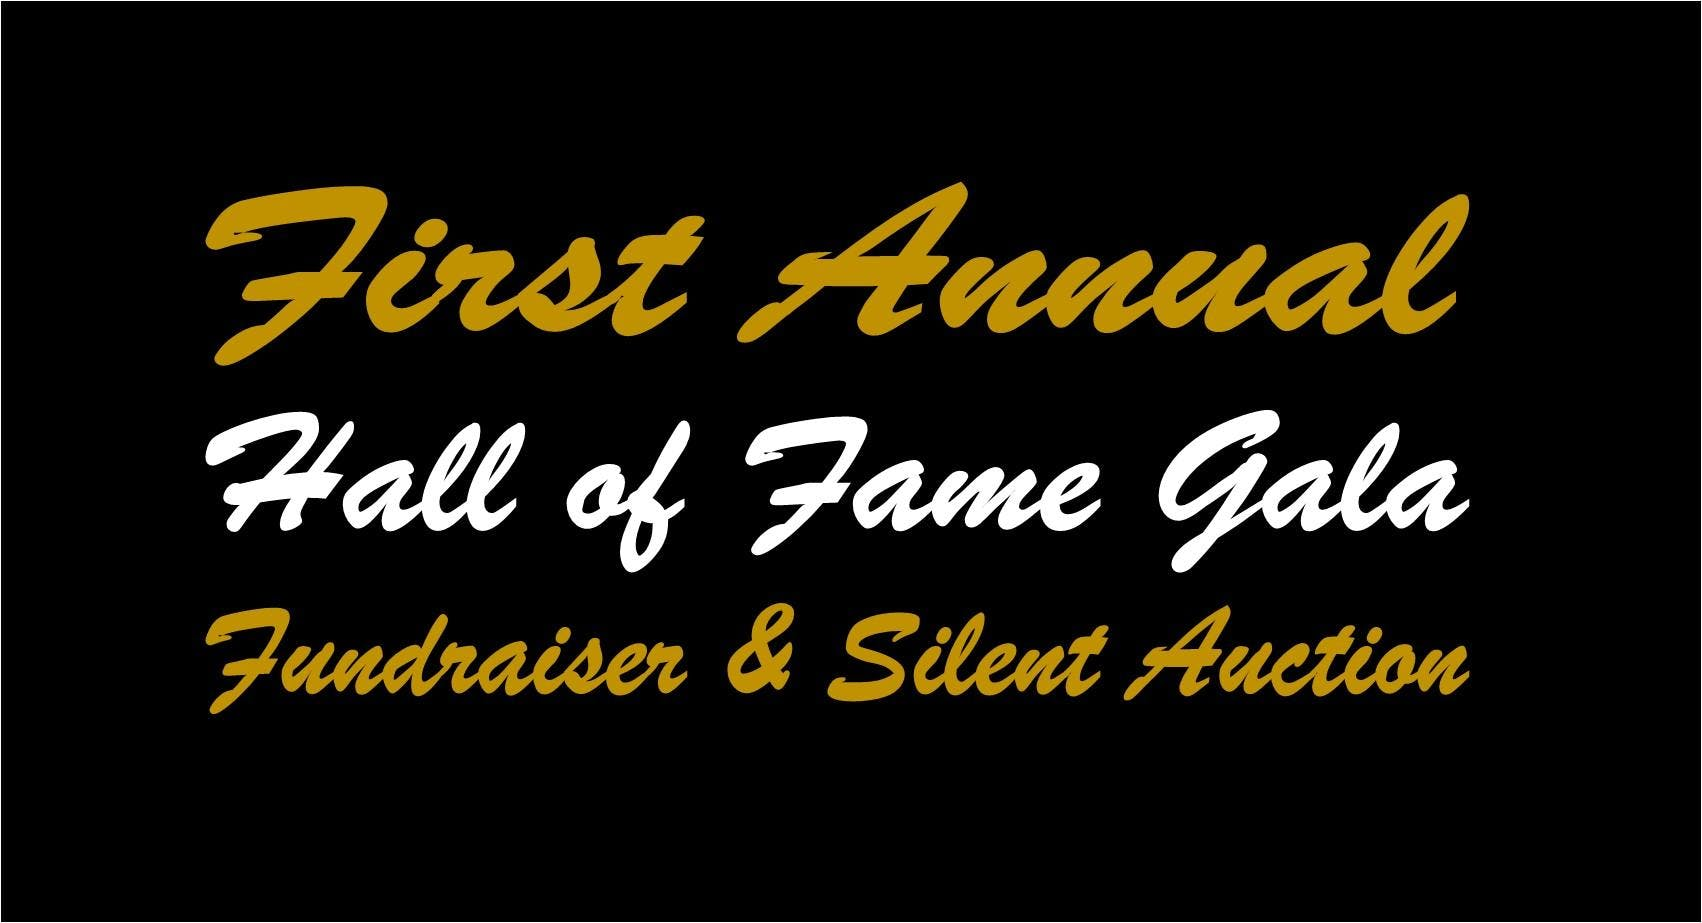 First Annual Hall of Fame Gala Celebration, Fundraiser and Silent Auction